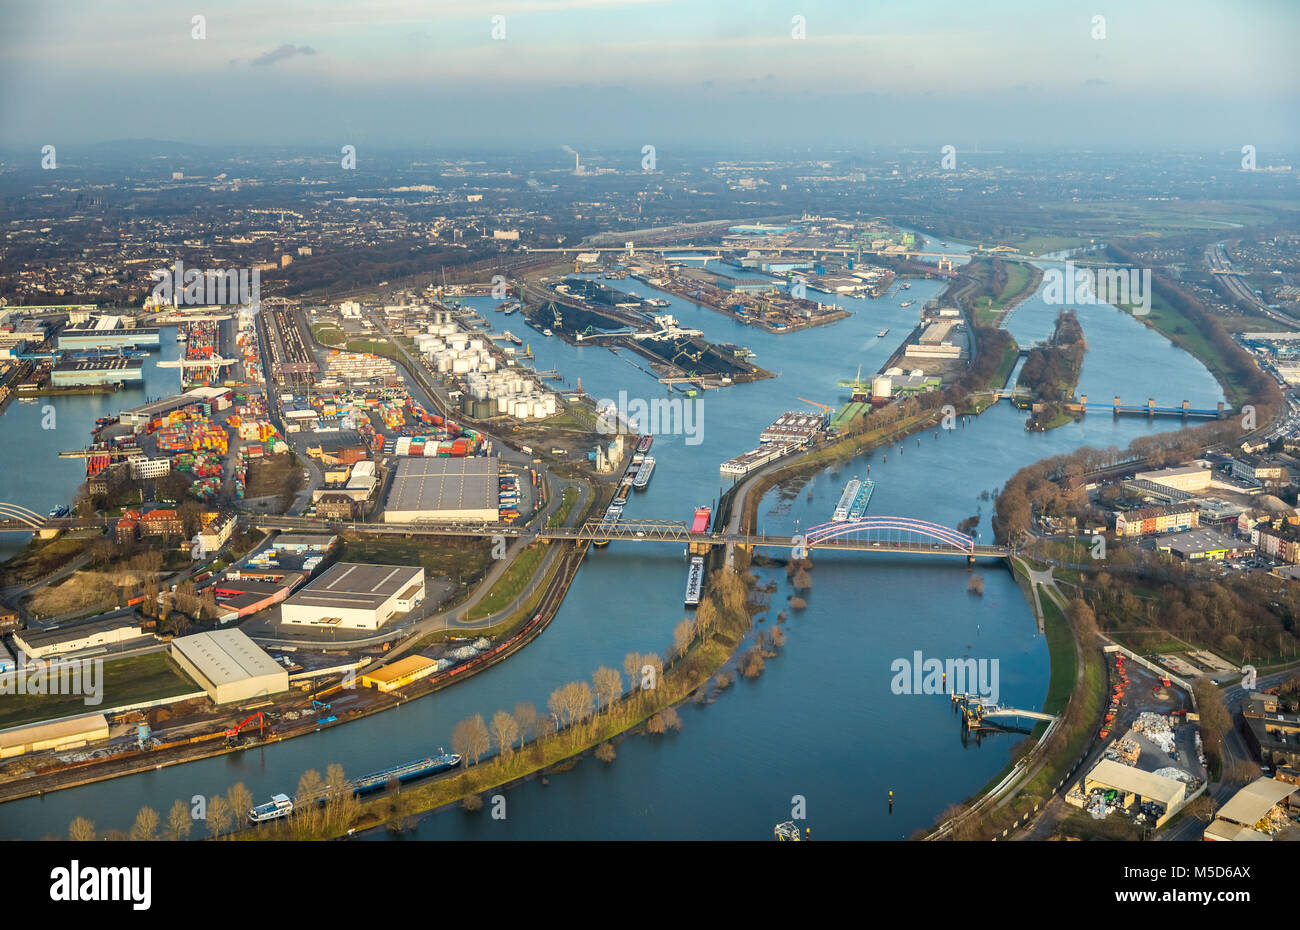 Flood on the Rhine, view of Duisburg inland harbour, Duisburg, Ruhr area, North Rhine-Westphalia, Germany - Stock Image